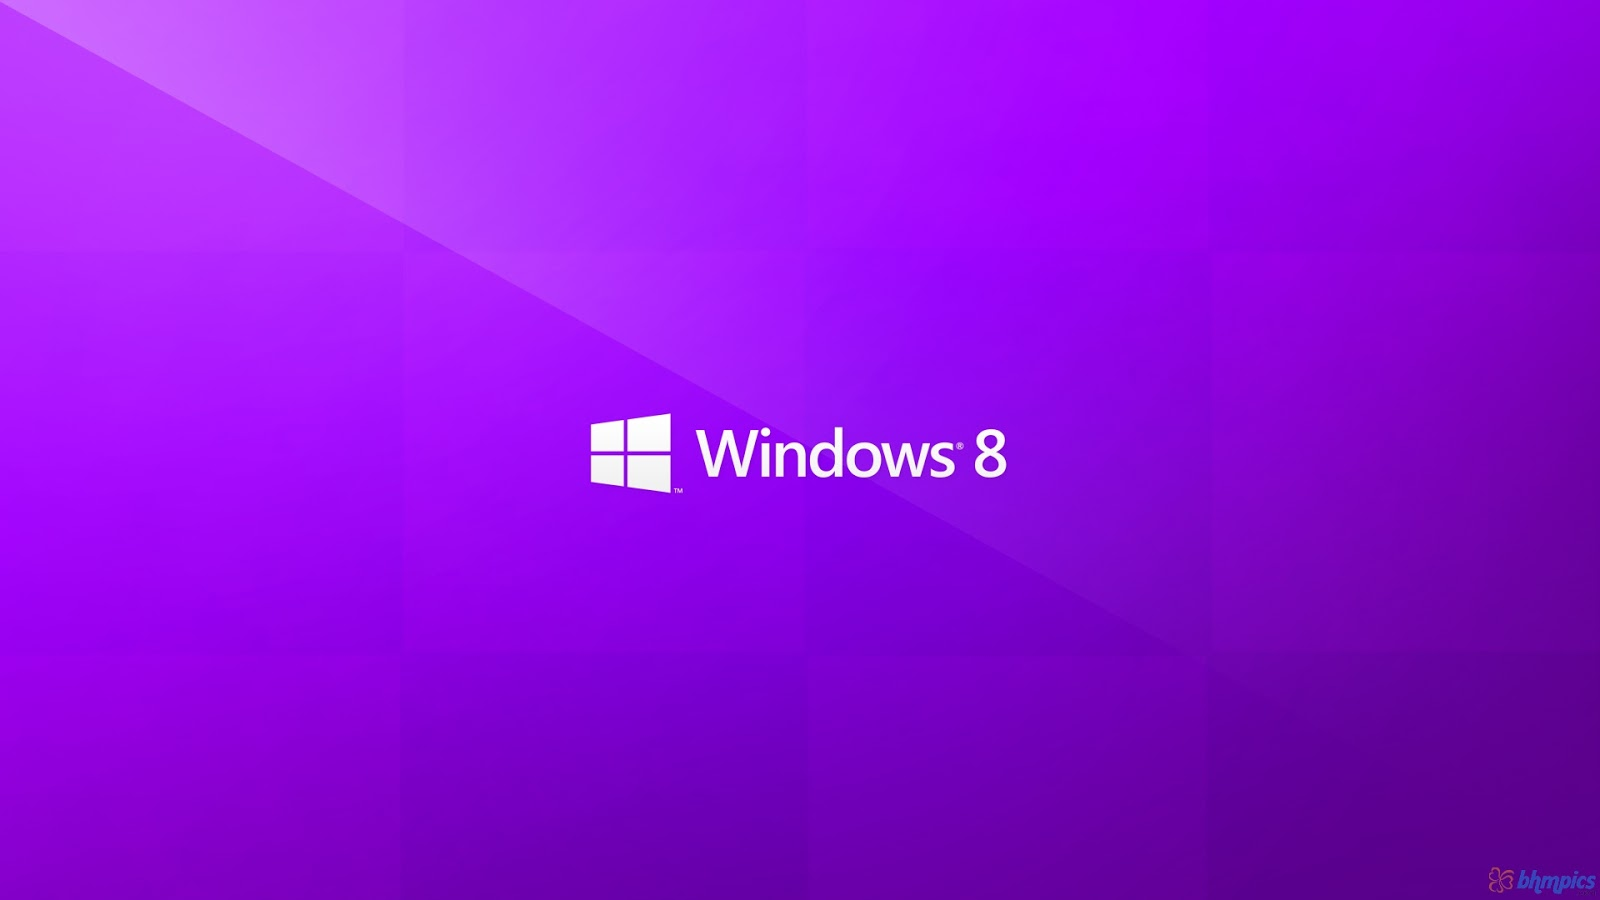 Hd Windows 8 4k Background For Iphone